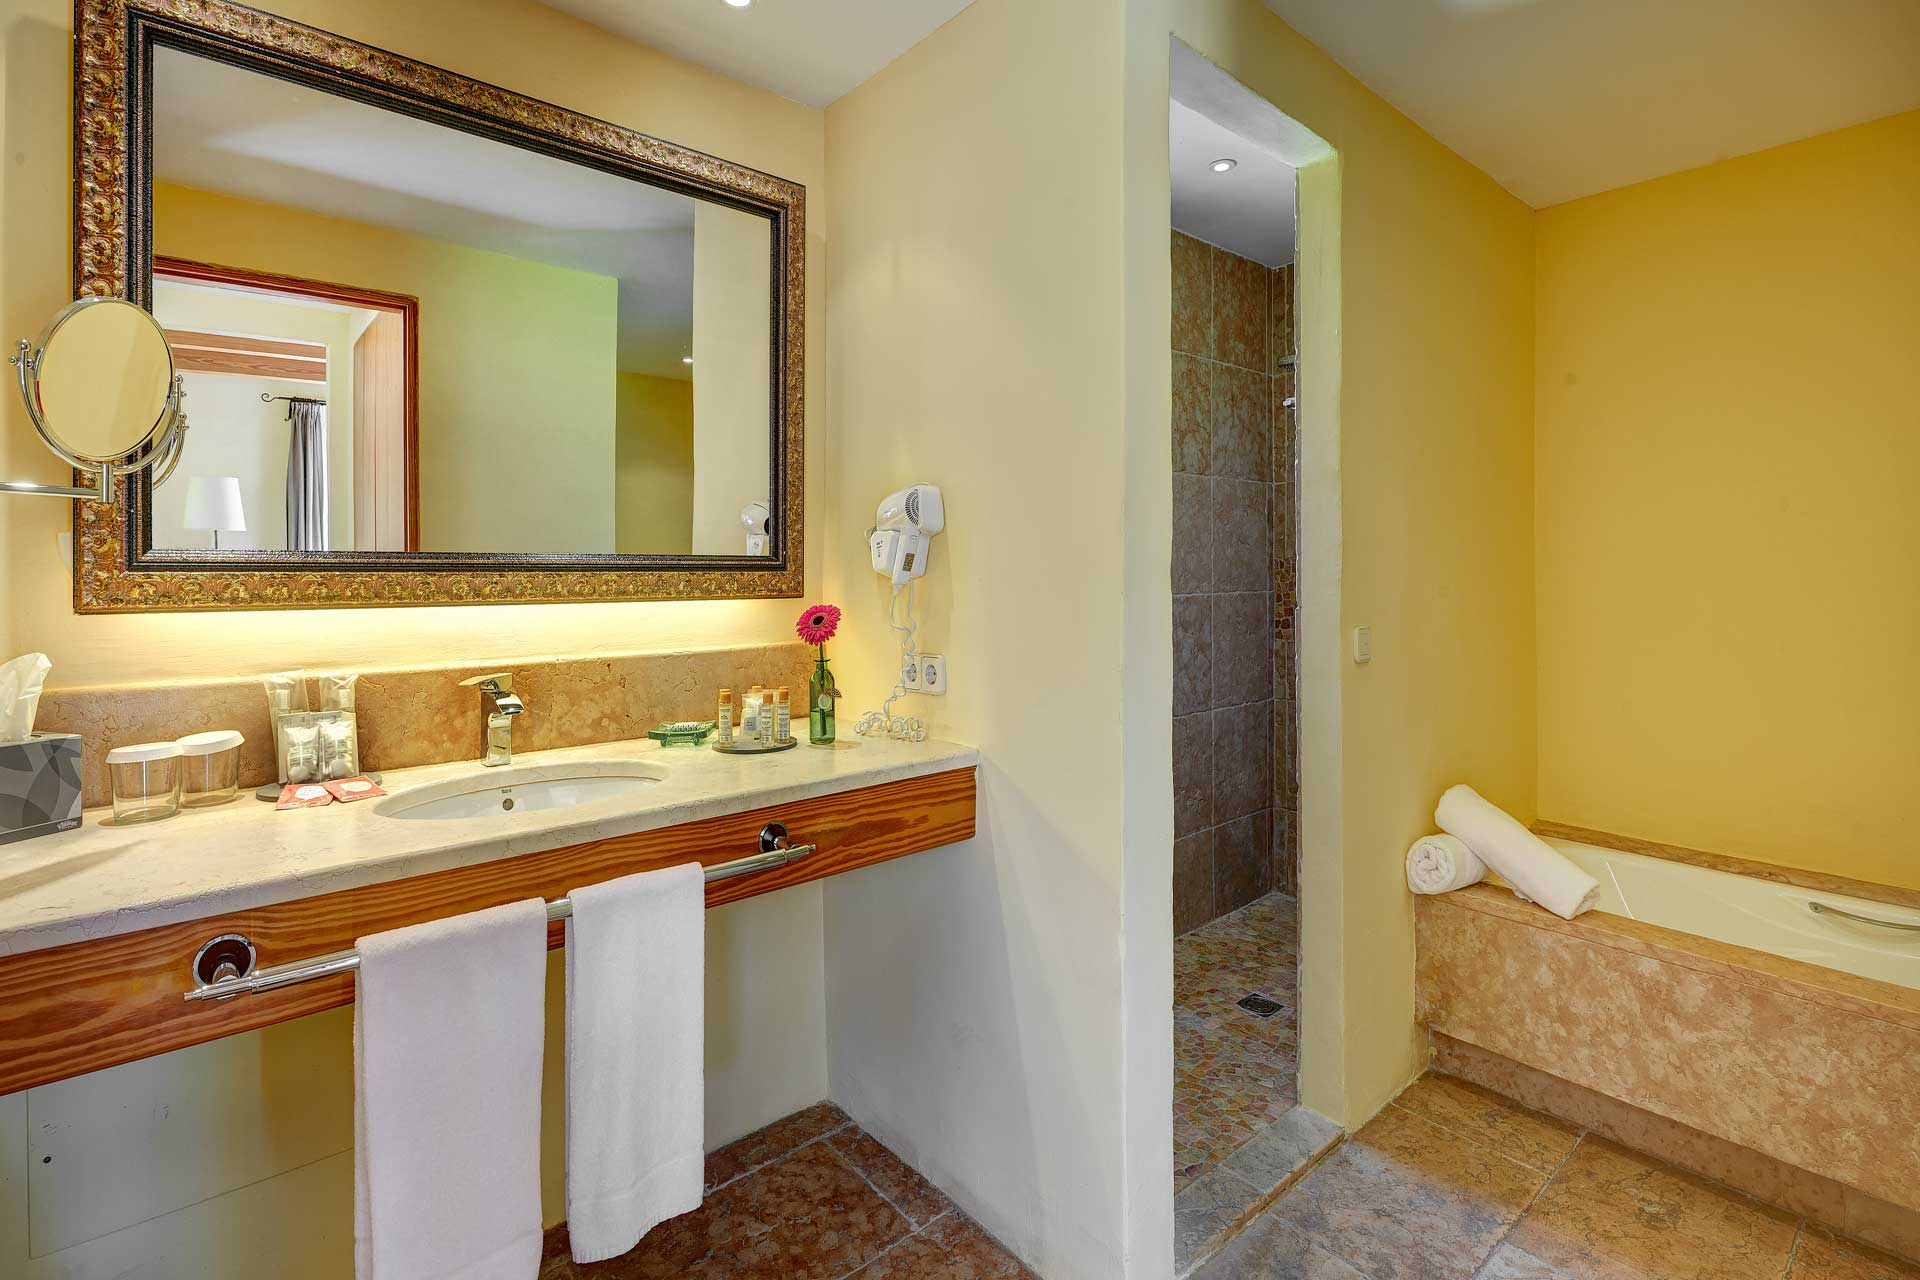 Finca-Hotel Sentido Pula Suites - Superior Suite with en suite bathroom